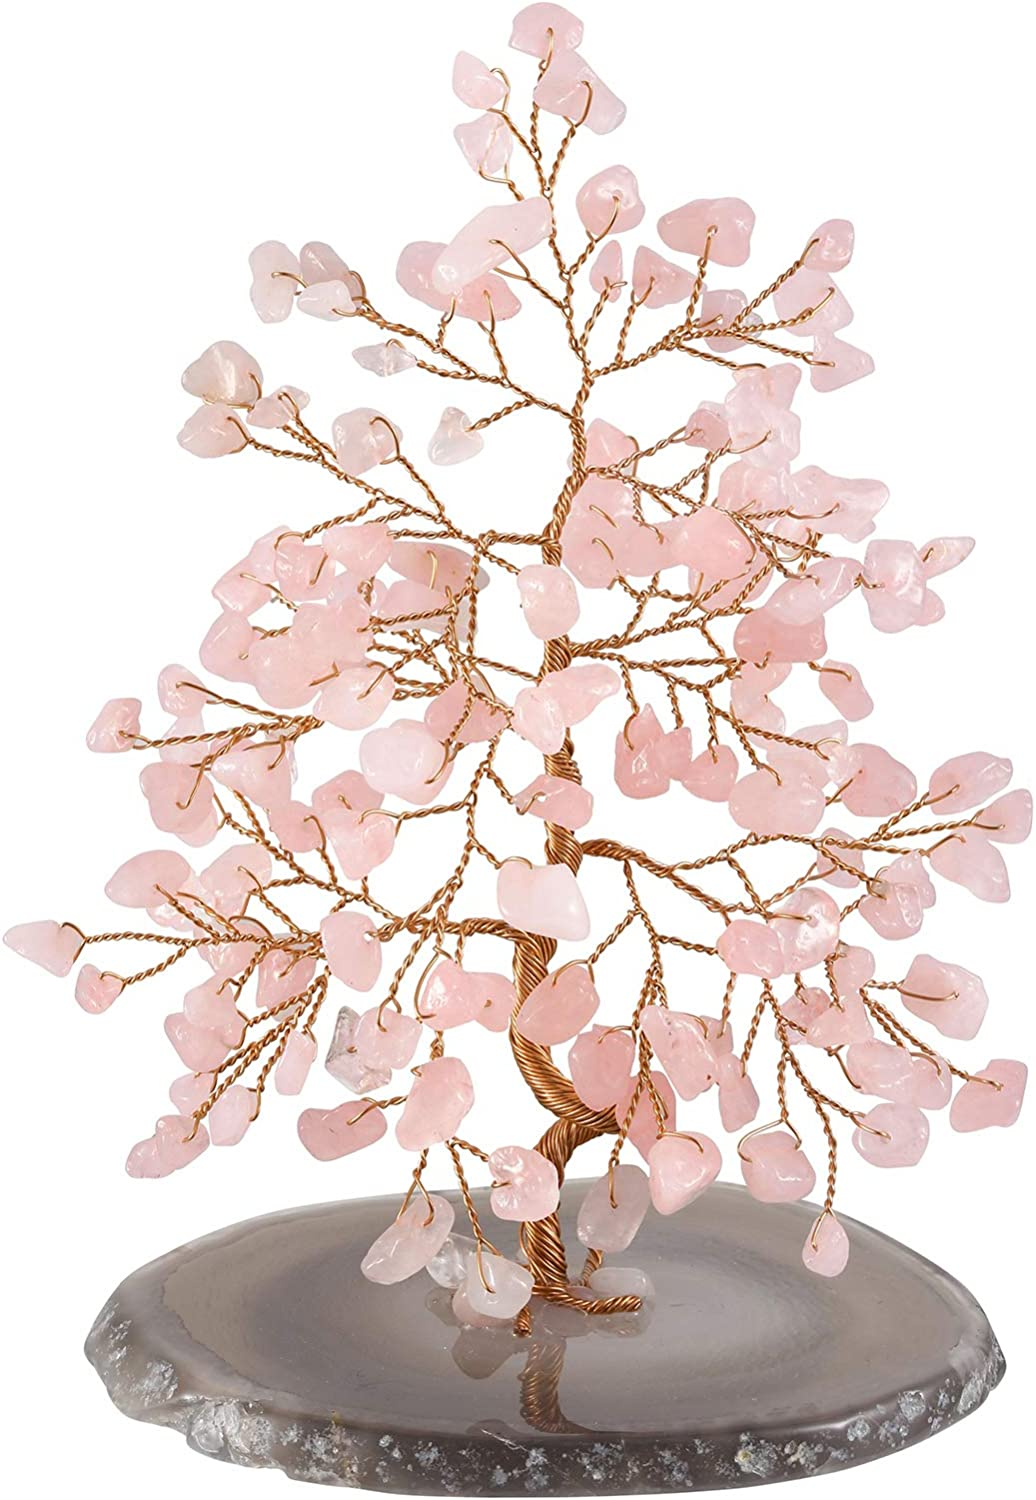 """Jovivi Natural Pink Crystal Rose Quartz Money Tree Tumbled Gemstones 5.5""""-6.3"""", Geode Agate Slices Base Feng Shui Ornaments Home Living Room Table Office Decoration for Wealth and Luck"""